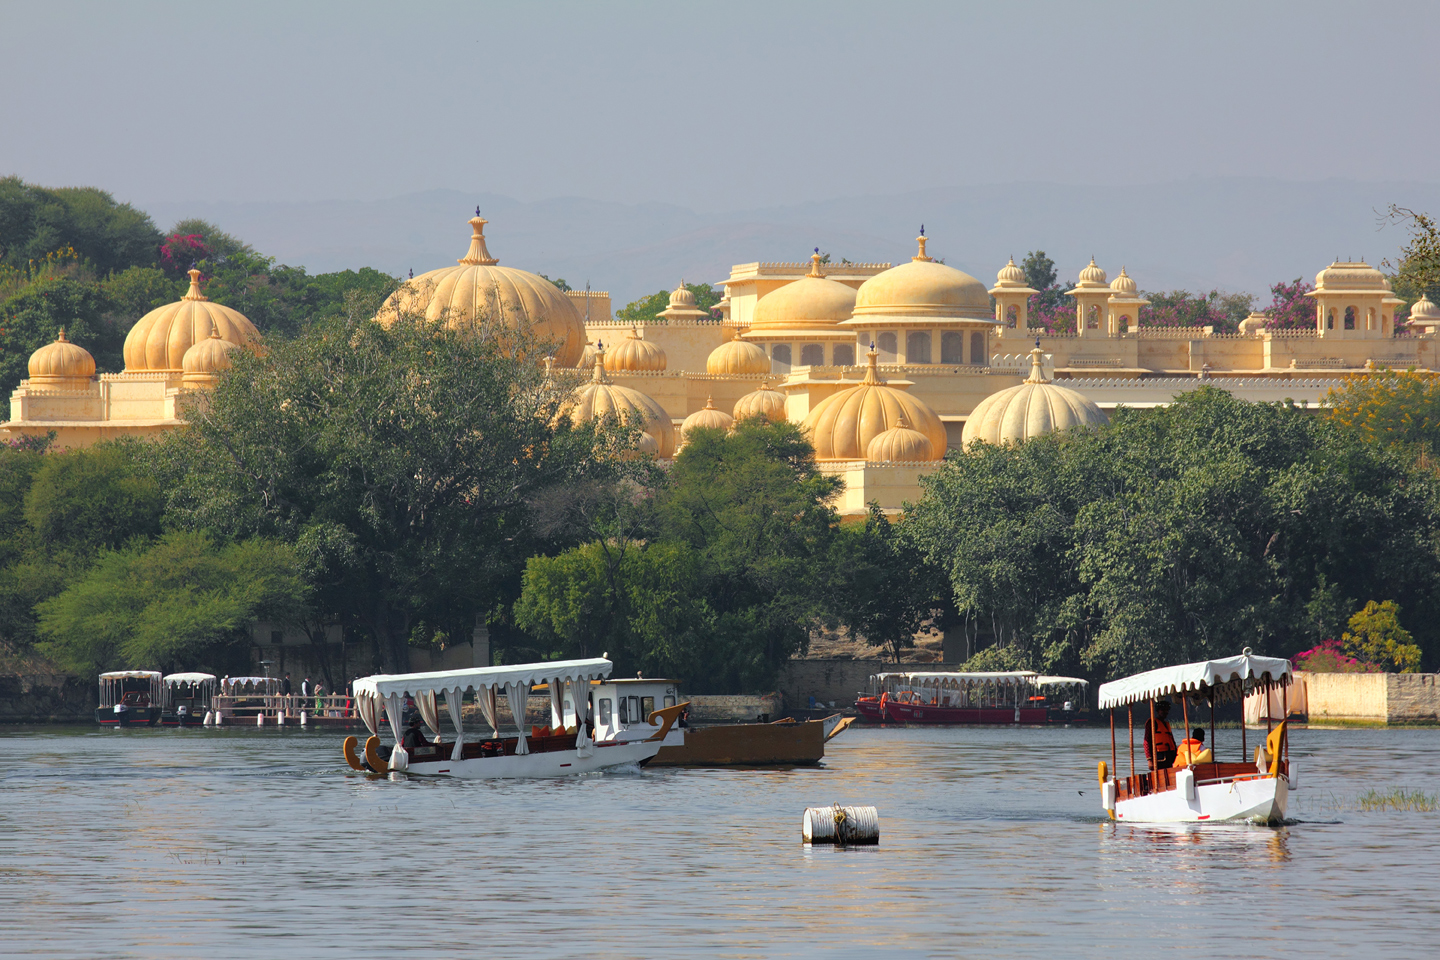 Boats and palace on Pichola lake in Udaipur